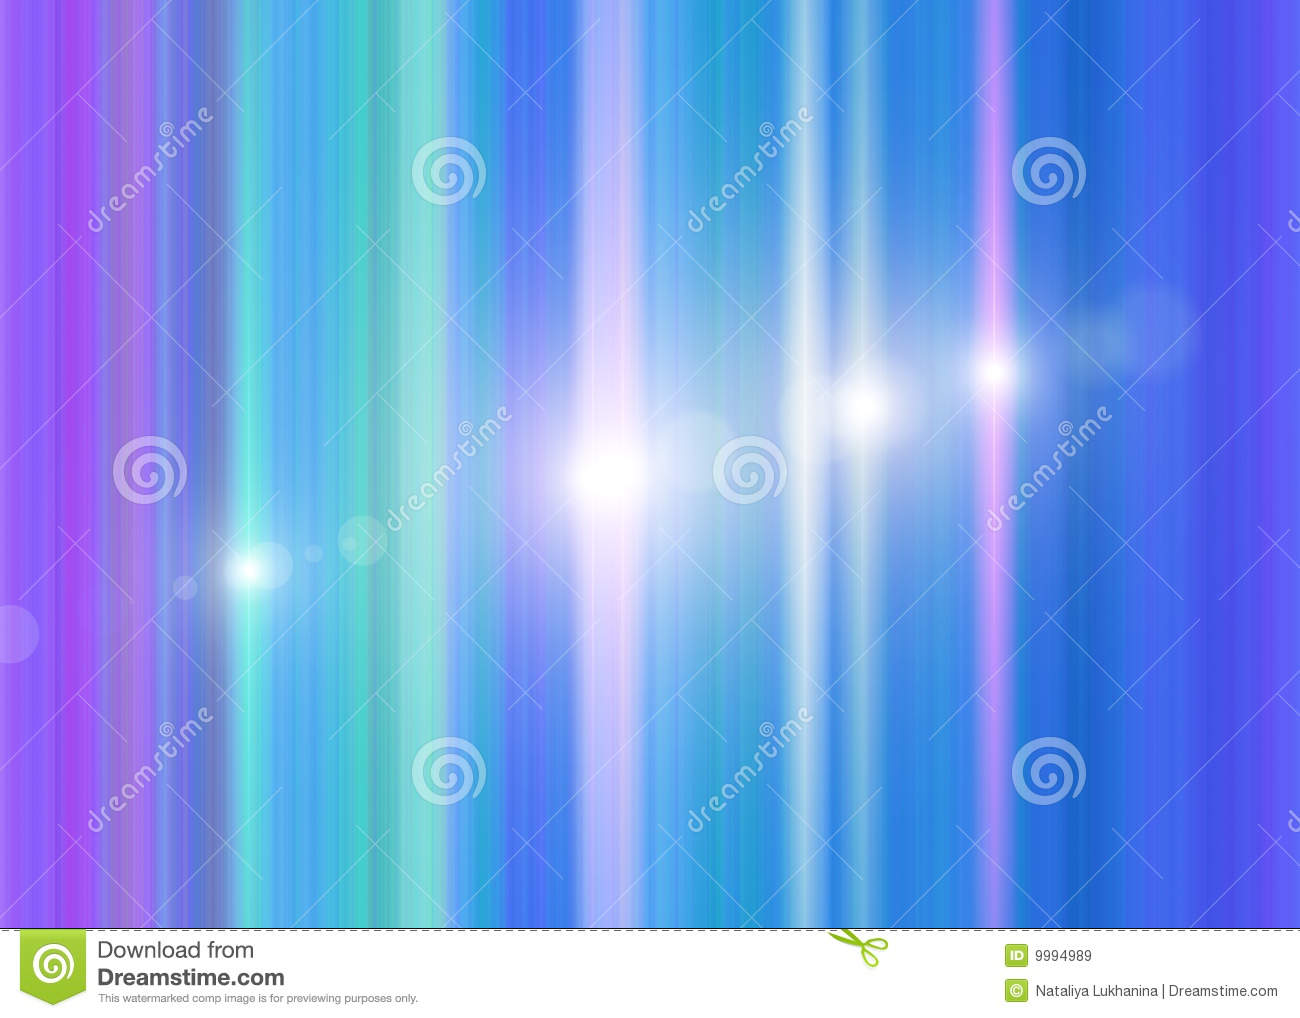 Abstract background blue tones